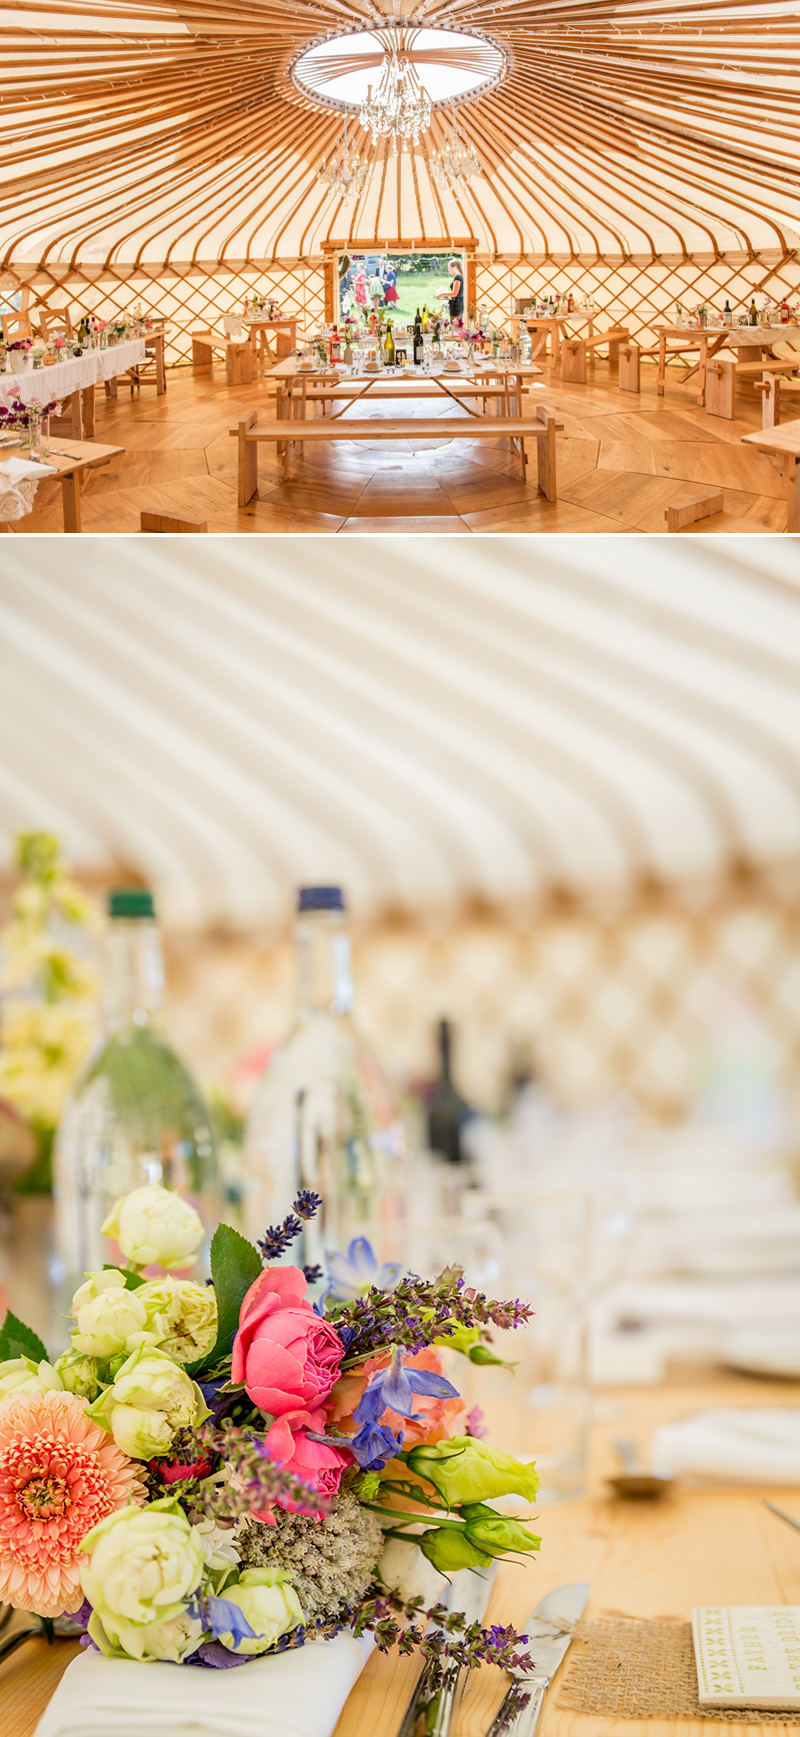 styling-your-wedding-yurt-and-outdoor-celebration-wedding-yurts-summer-wedding-layer-4